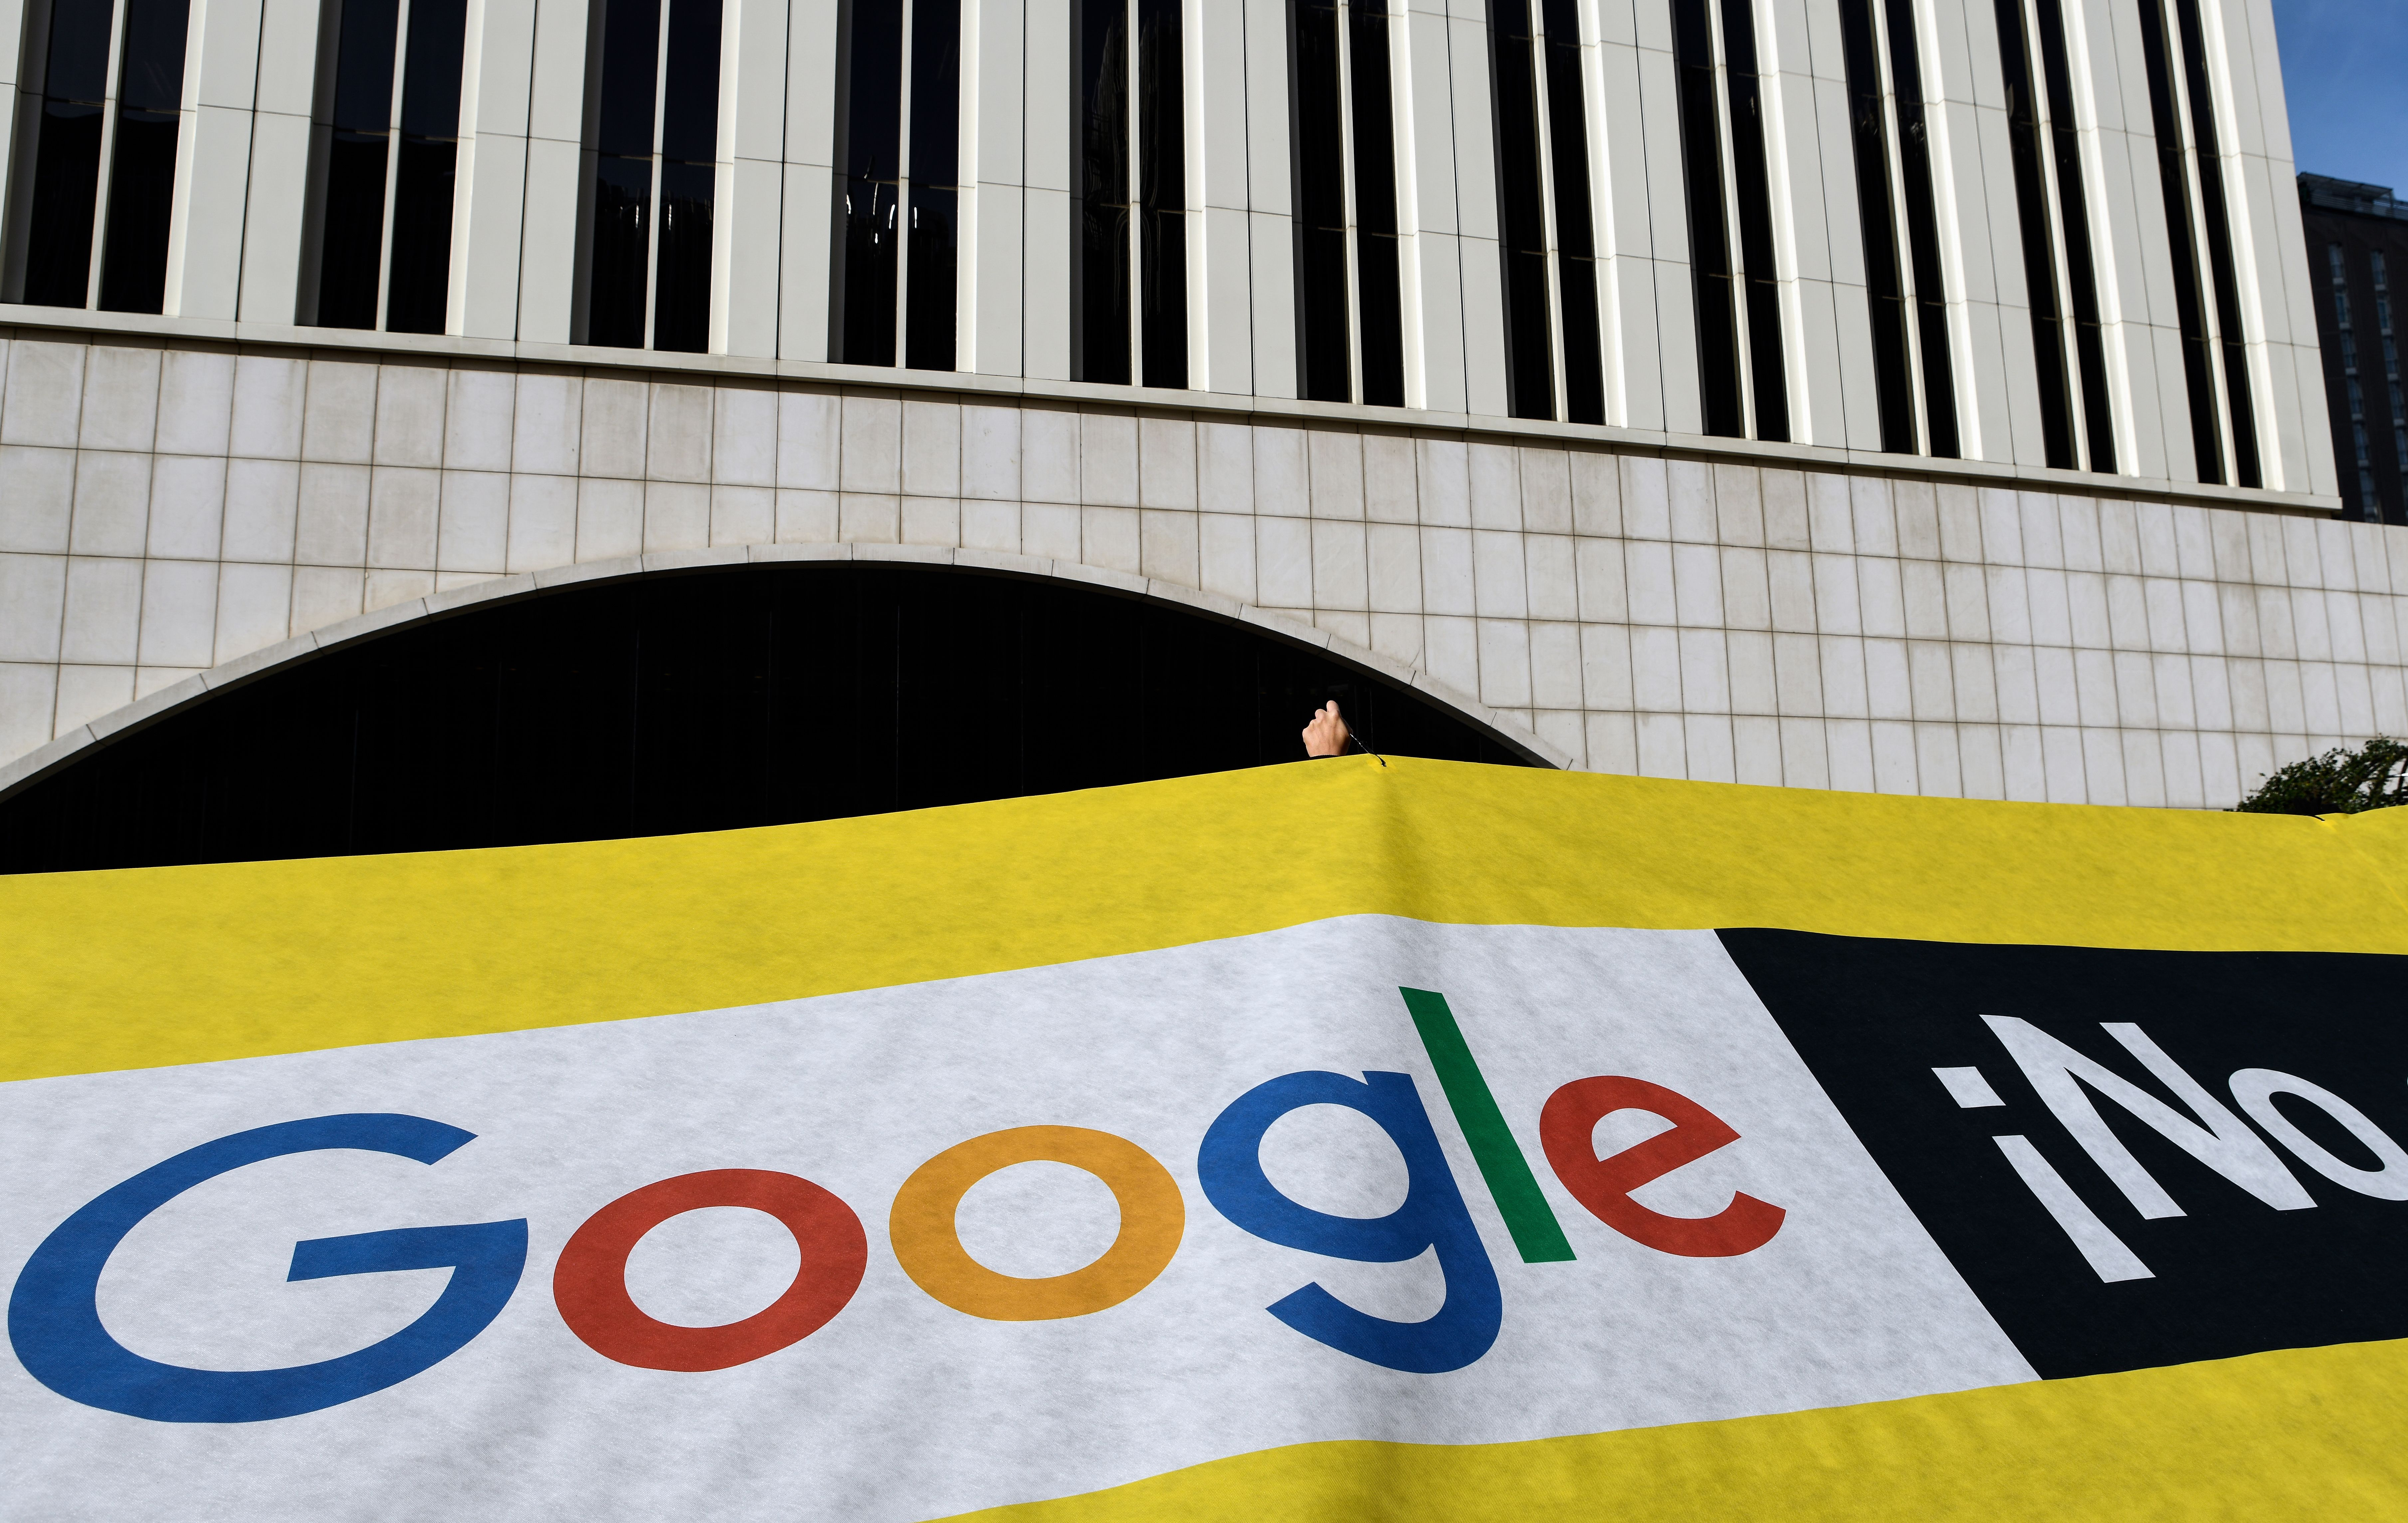 Amnesty International activists gather for a protest outside the Google headquarters in Madrid on November 27, 2018 as part of a campaign calling on Google to cancel its controversial plan to launch a censored search engine in China. OSCAR DEL POZO/AFP/Getty Images